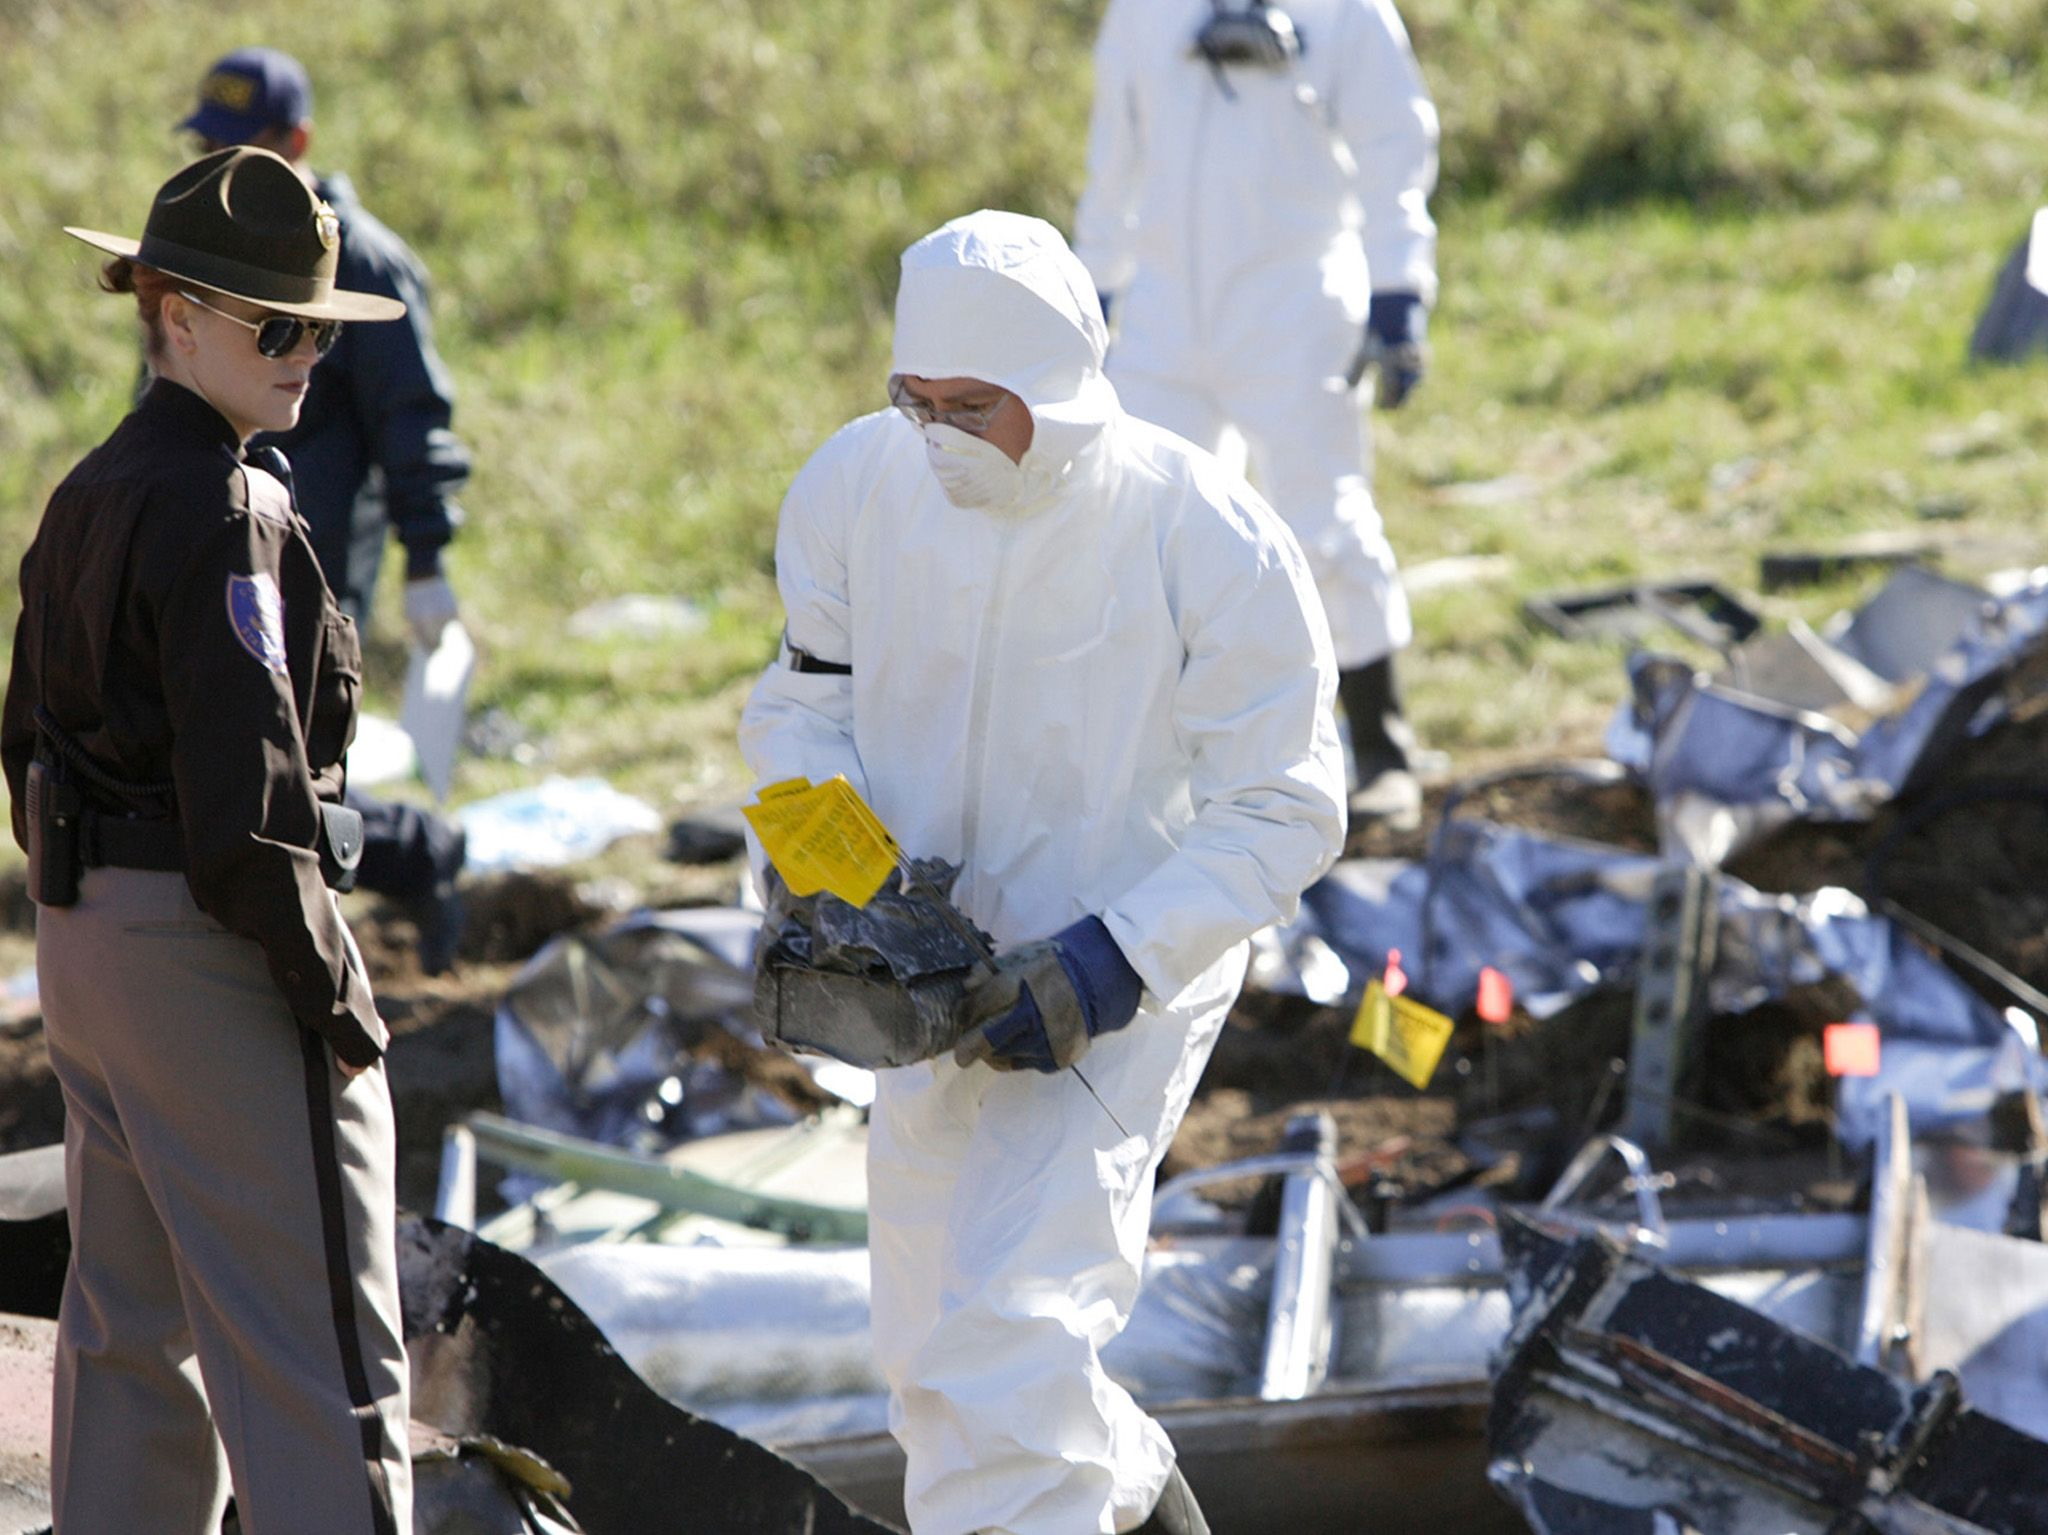 The NTSB recover evidence. This image is from Air Crash Investigation. [Photo of the day - January 2021]